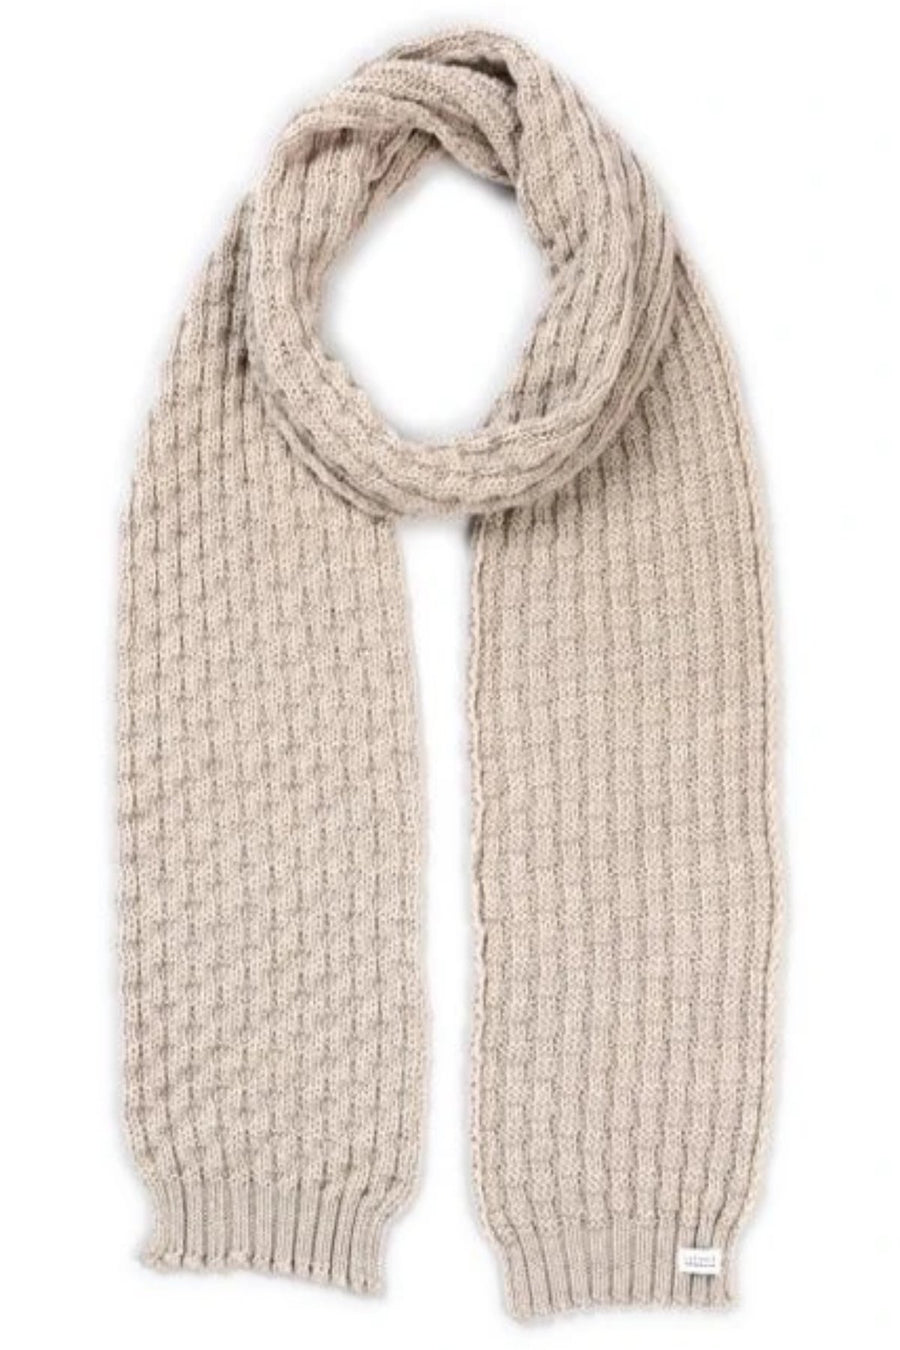 Bellamy Scarf - Oatmeal - Shop Online At Mookah - mookah.com.au